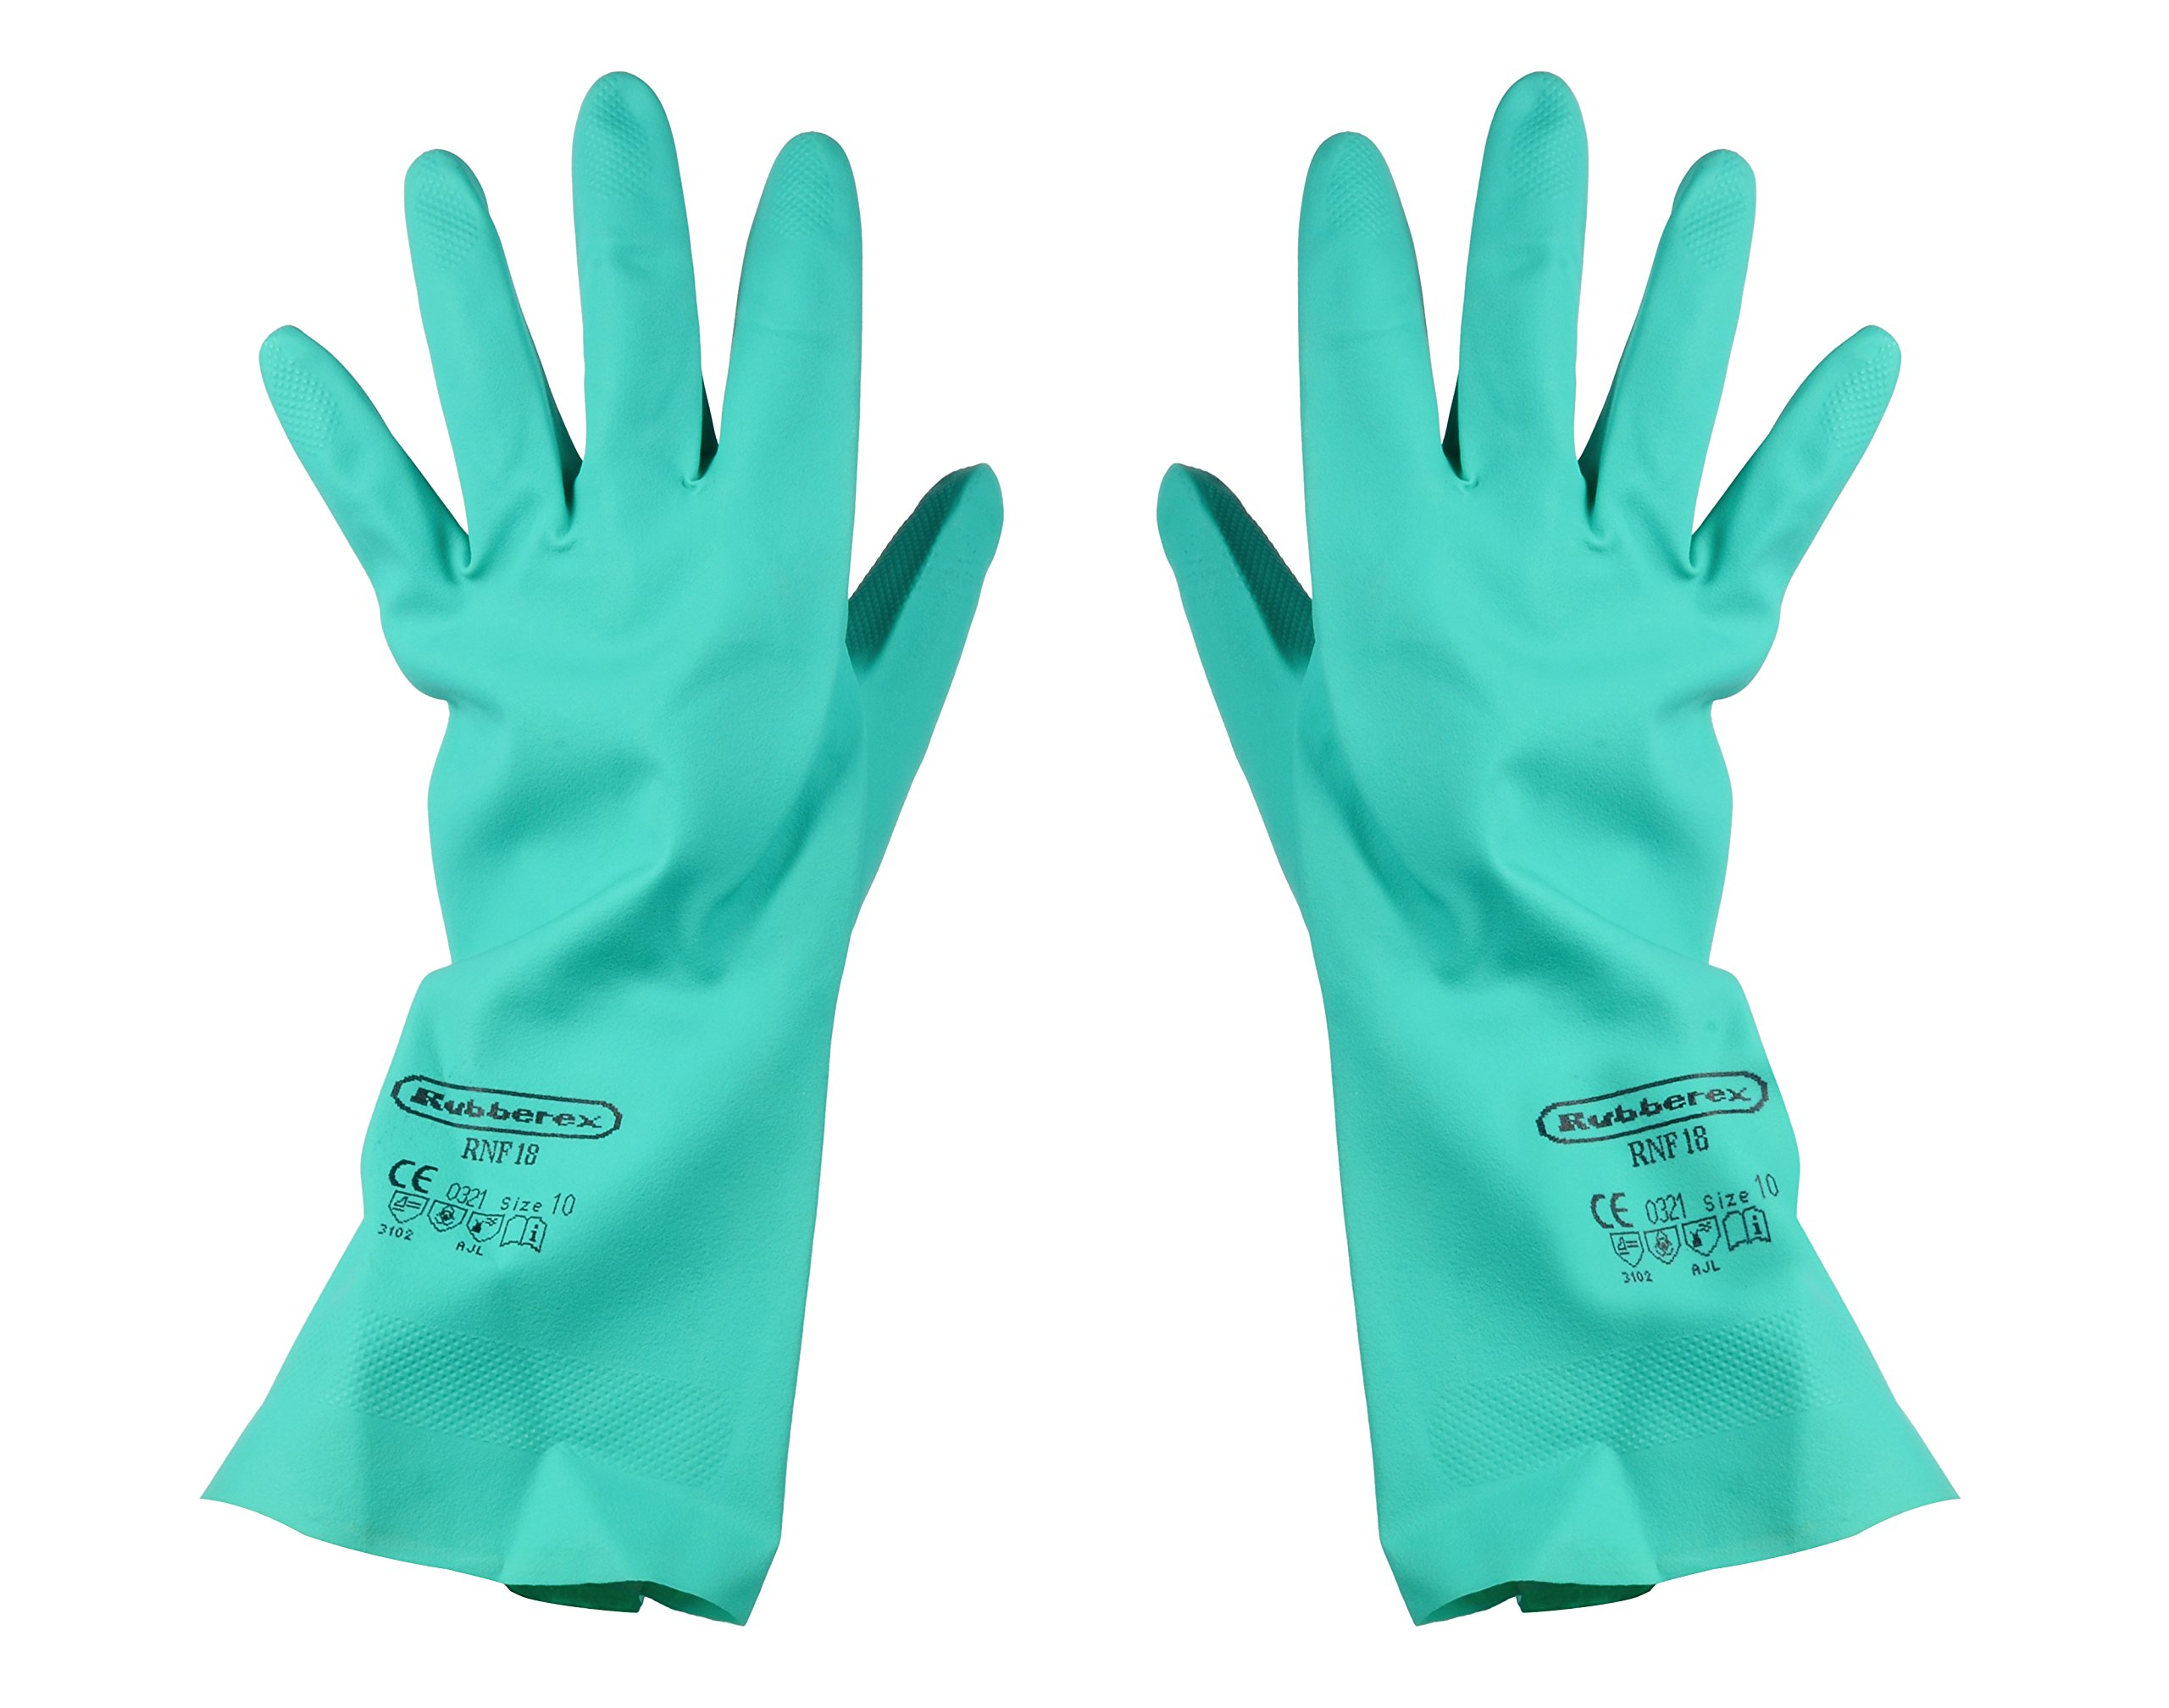 Nitrile Gloves, Cotton Flock lined, Solvent Resistant, 0.46 mil Thickness, Large, Green